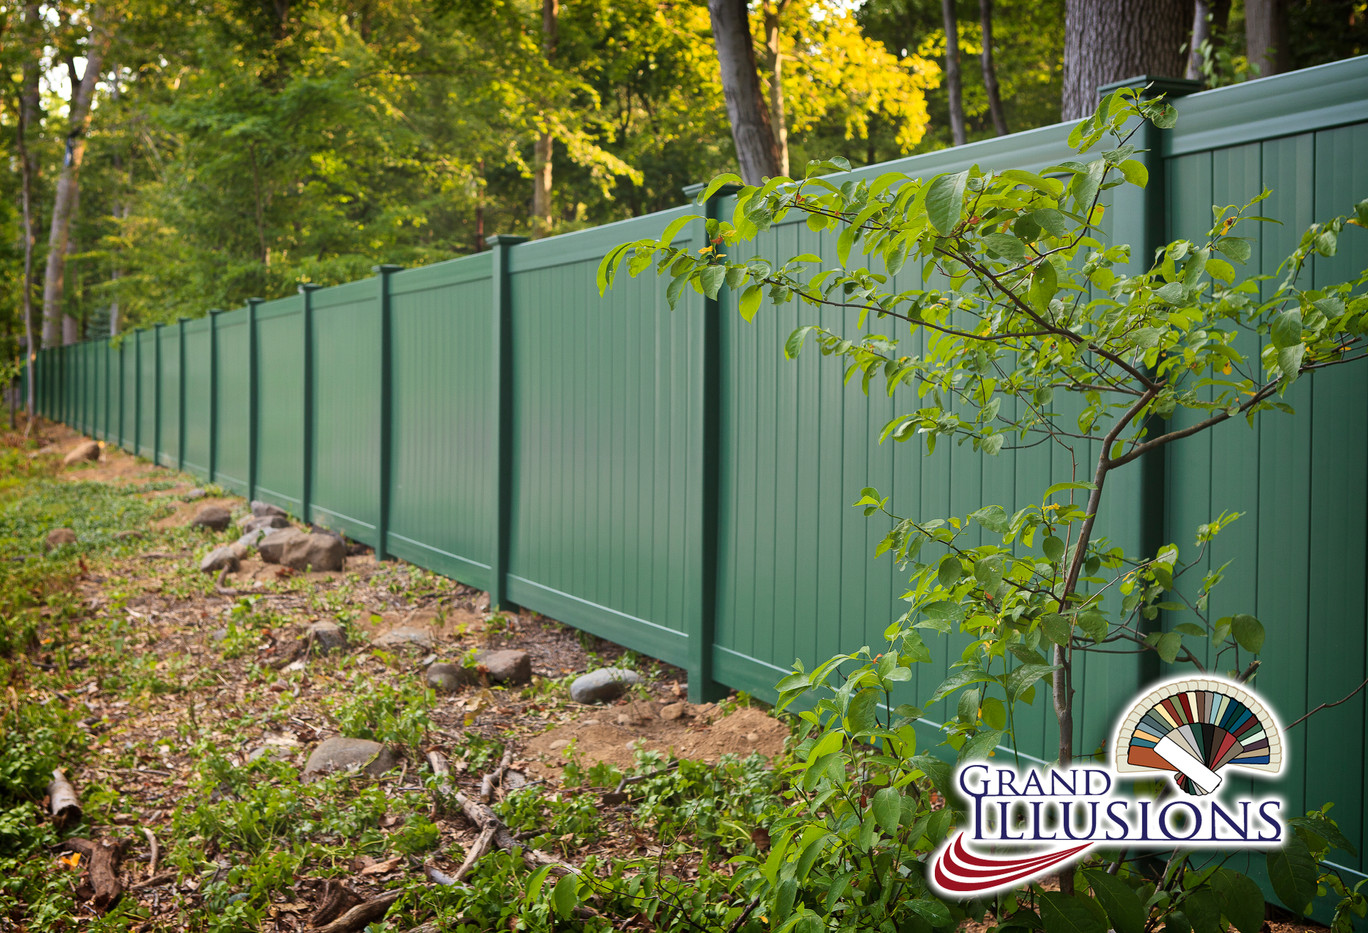 Grand illusions green pvc fence